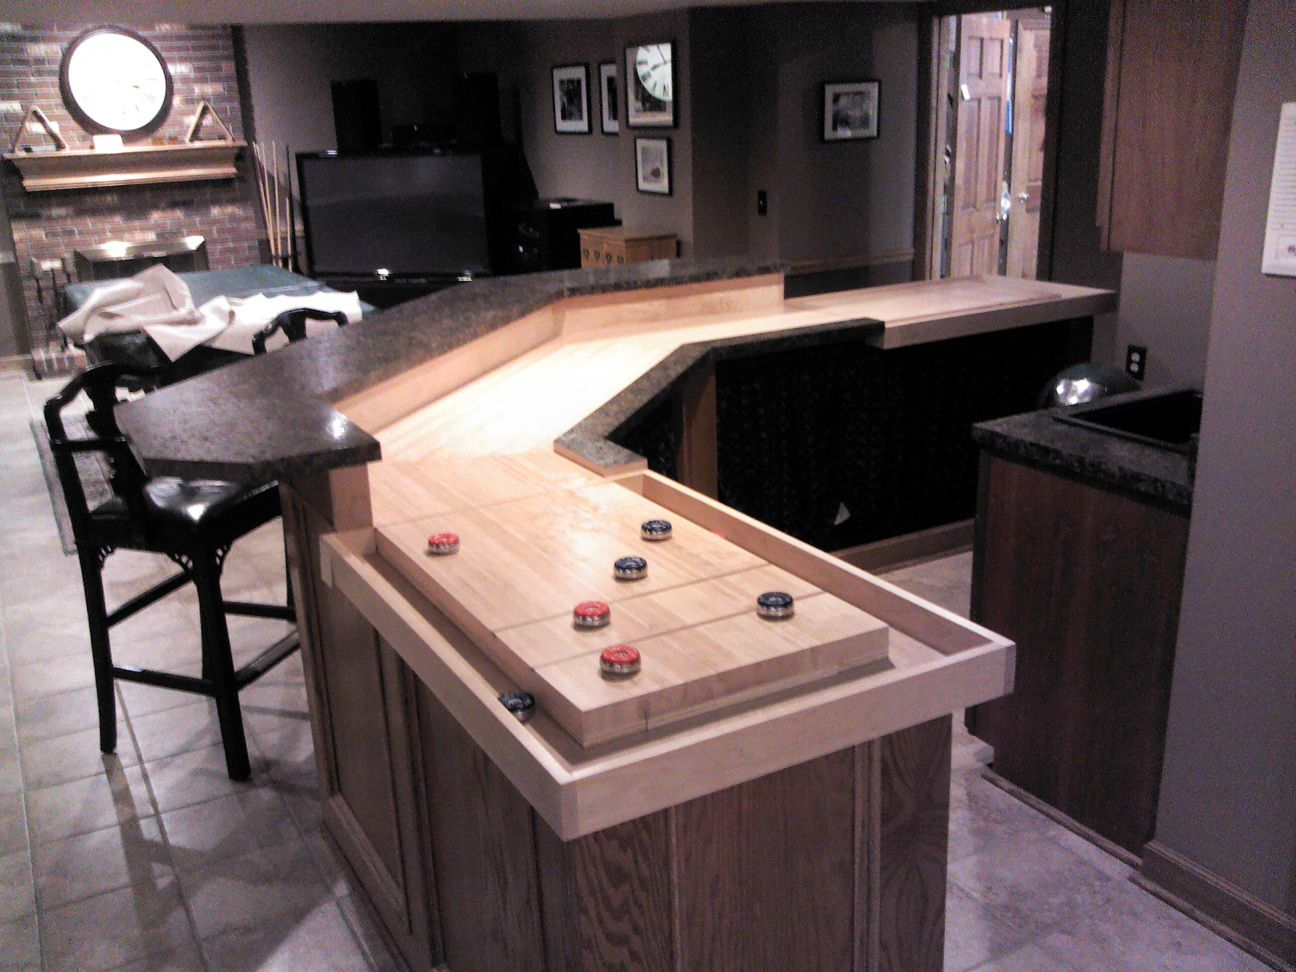 Shuffleboard Table · This Shuffleboard Bar Was Built With Angles. The Bank  Shots Make A More Challenging Game